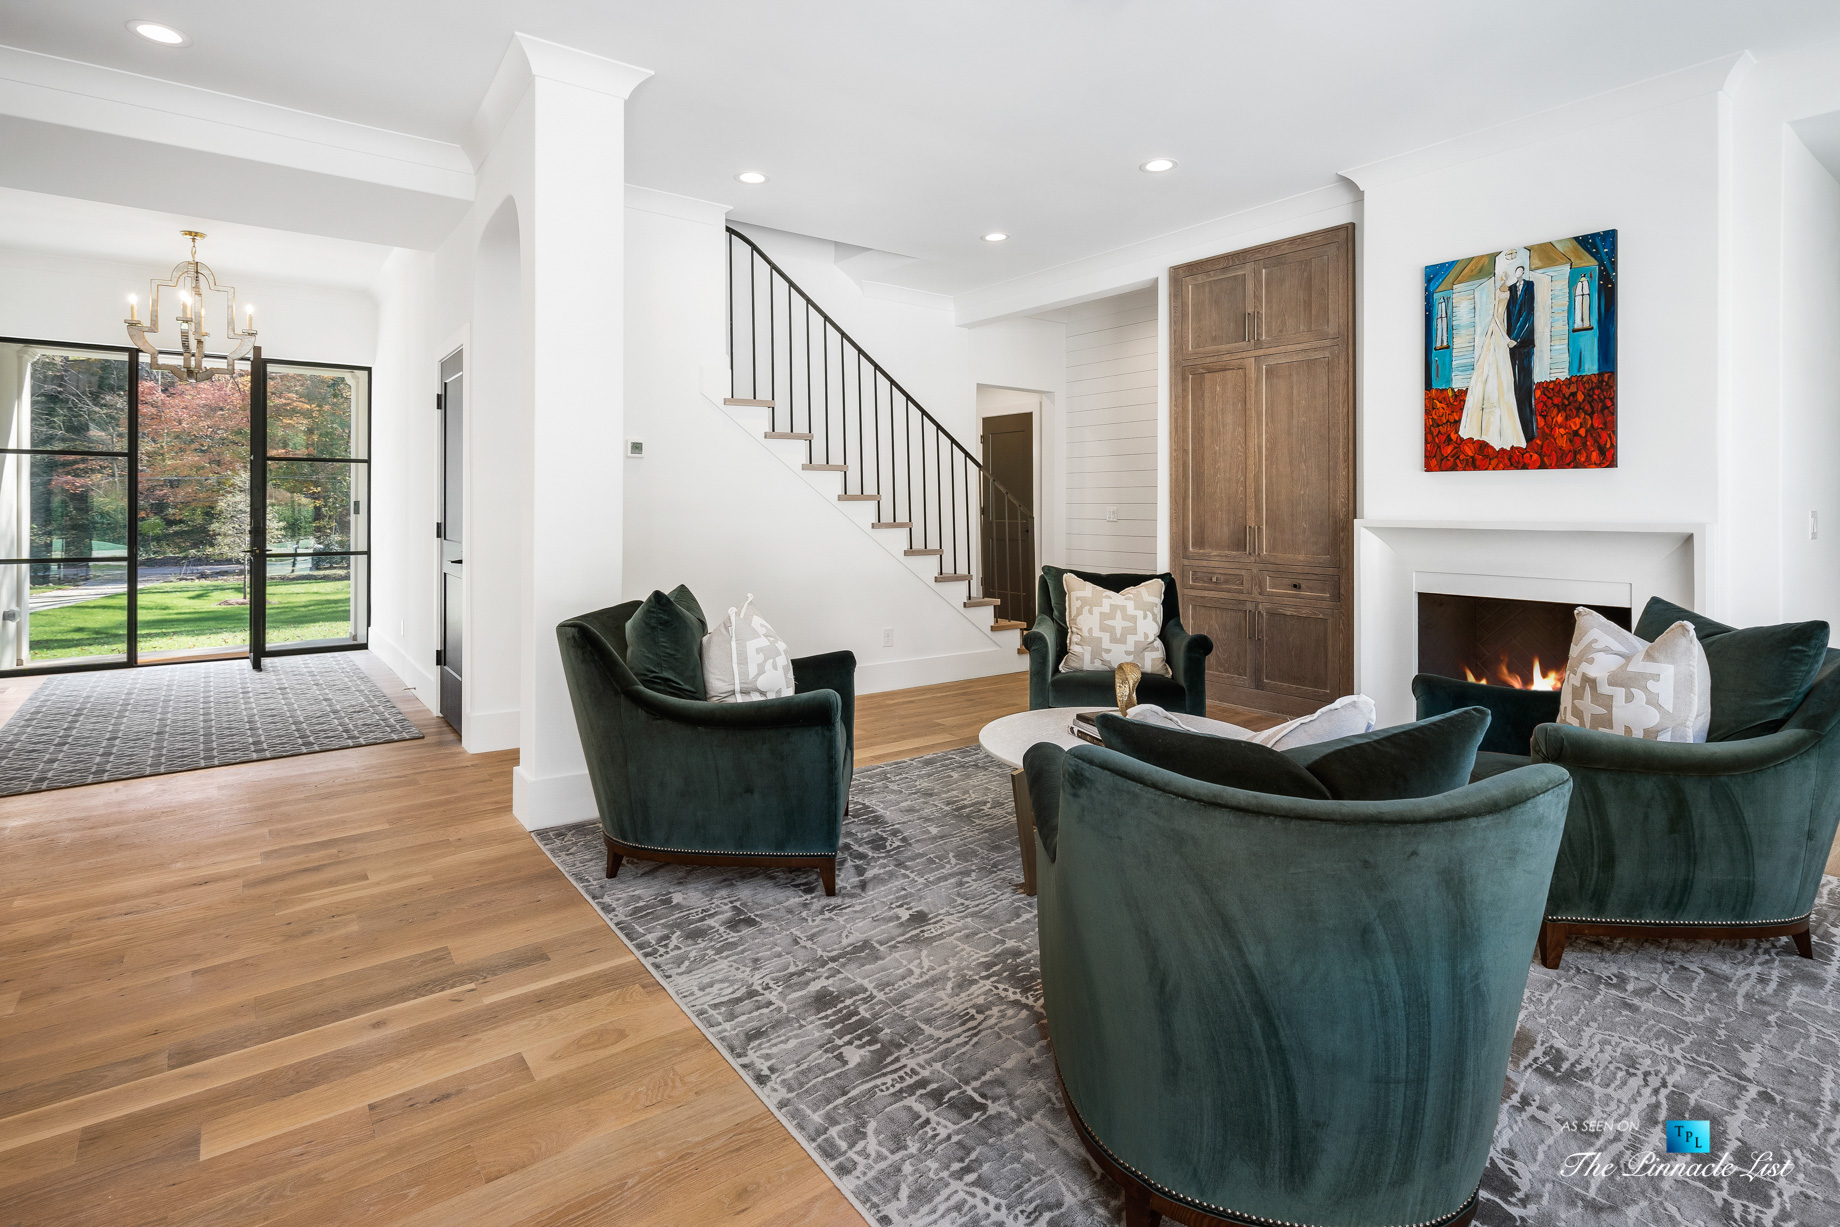 447 Valley Rd NW, Atlanta, GA, USA - Foyer Sitting Area and Glass Door - Luxury Real Estate - Tuxedo Park Home